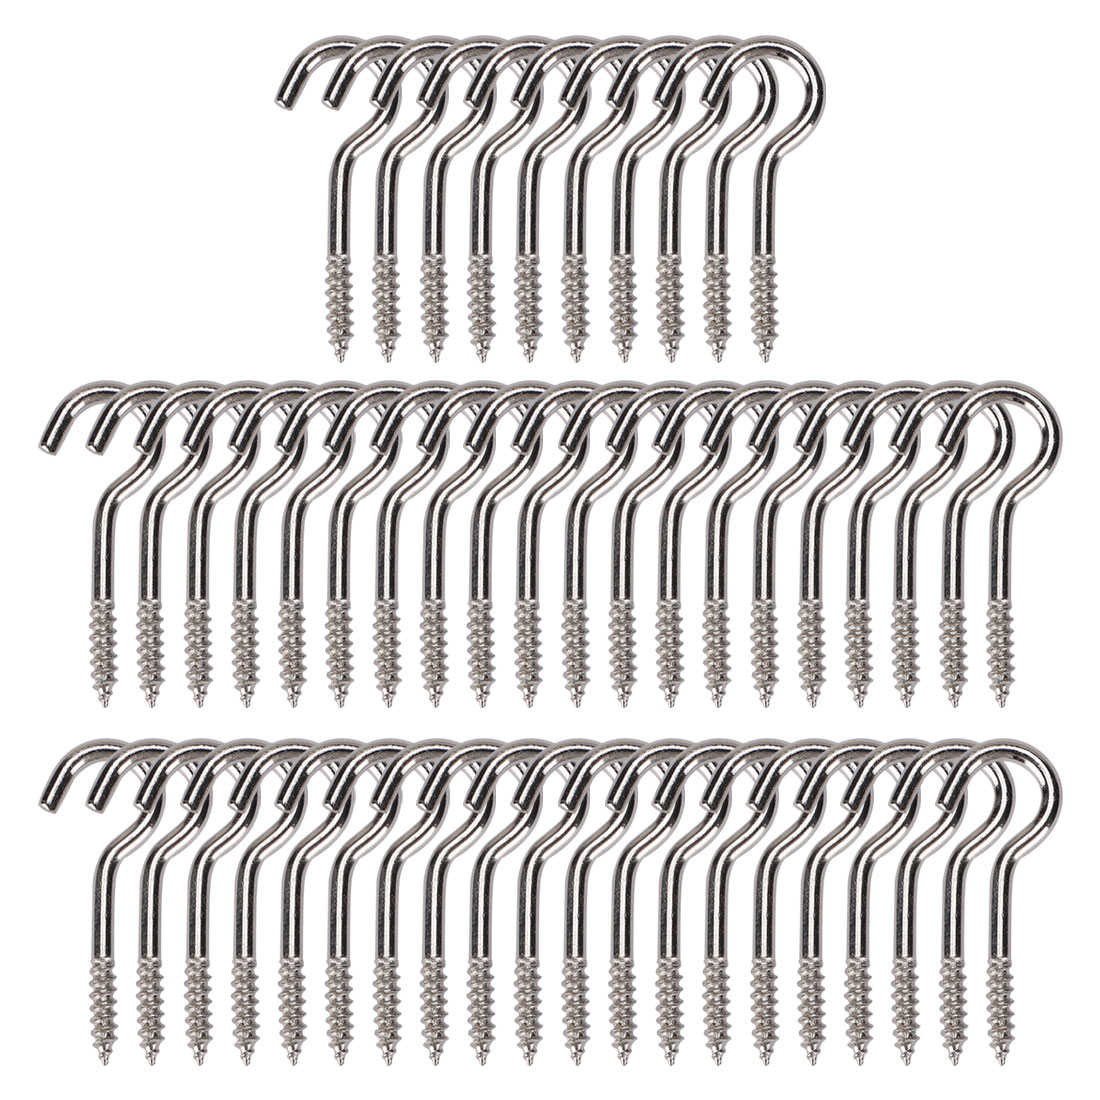 50pcs Cup Ceiling Hooks 1 Inch Durable Metal Screw in Hanger Hooks Silver Gray